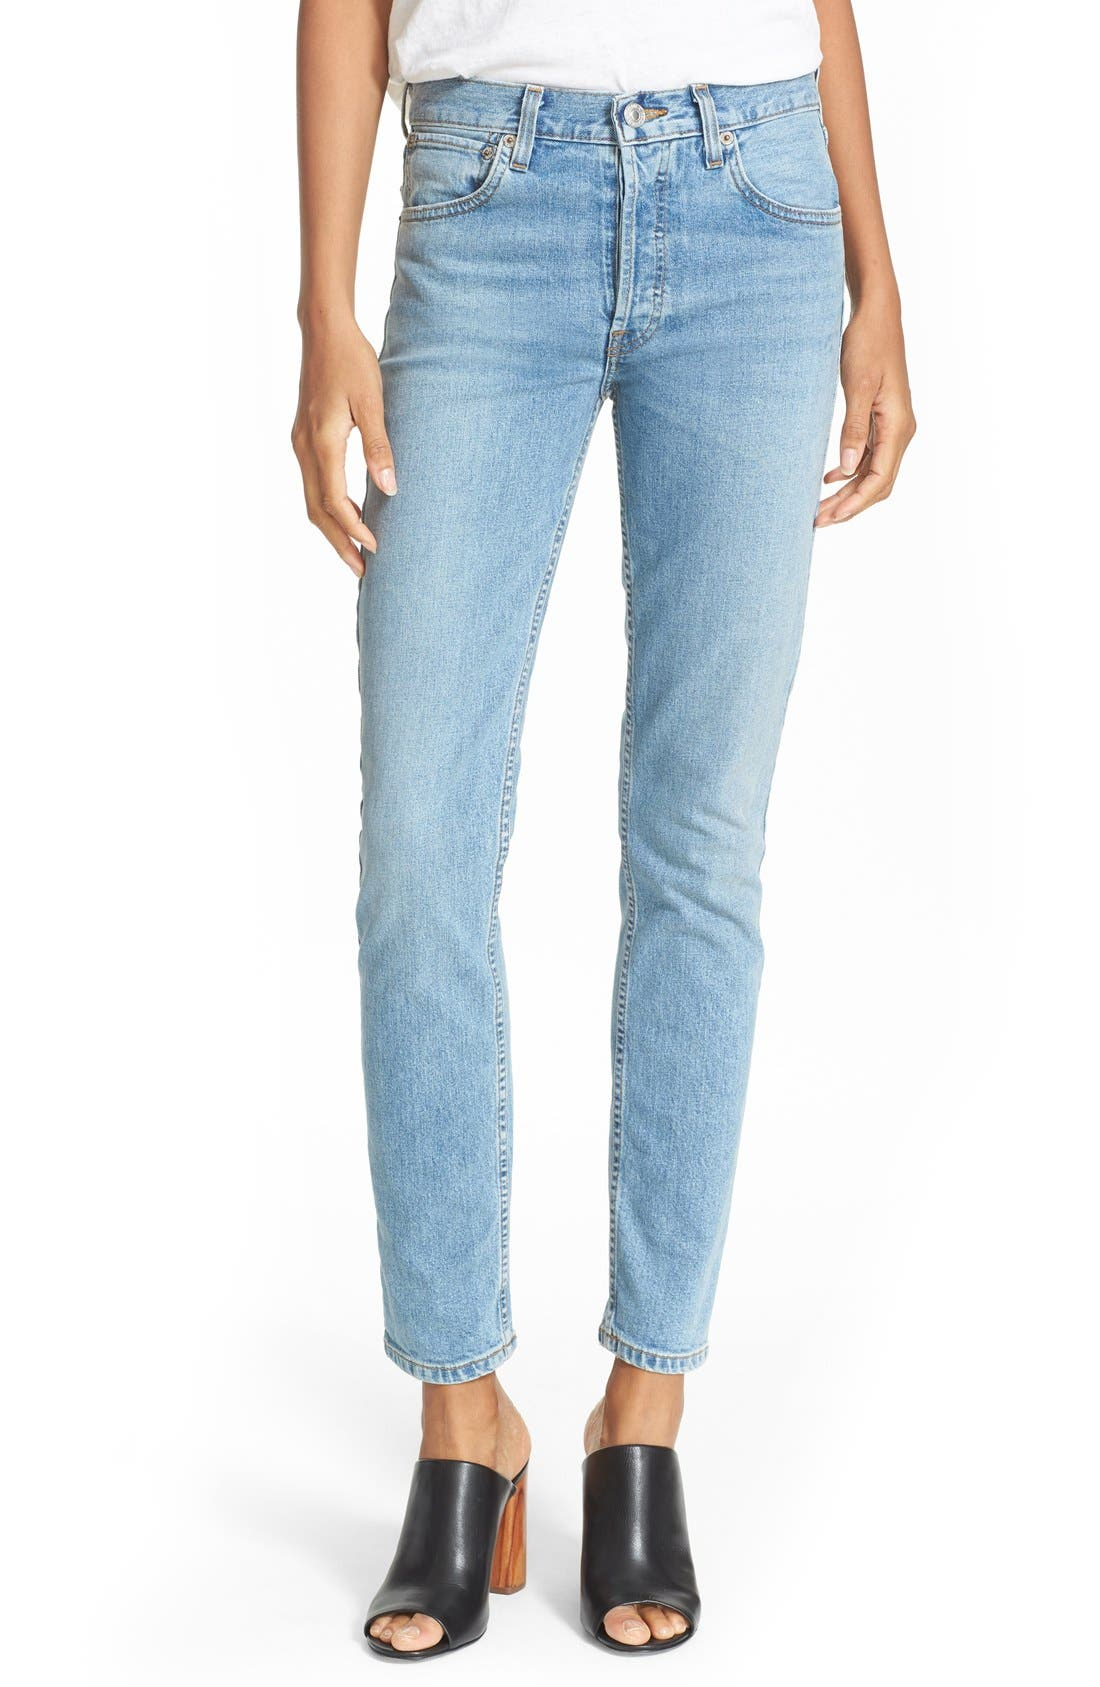 Alternate Image 1 Selected - Re/Done Originals High Waist Straight Skinny Stretch Jeans (Light)